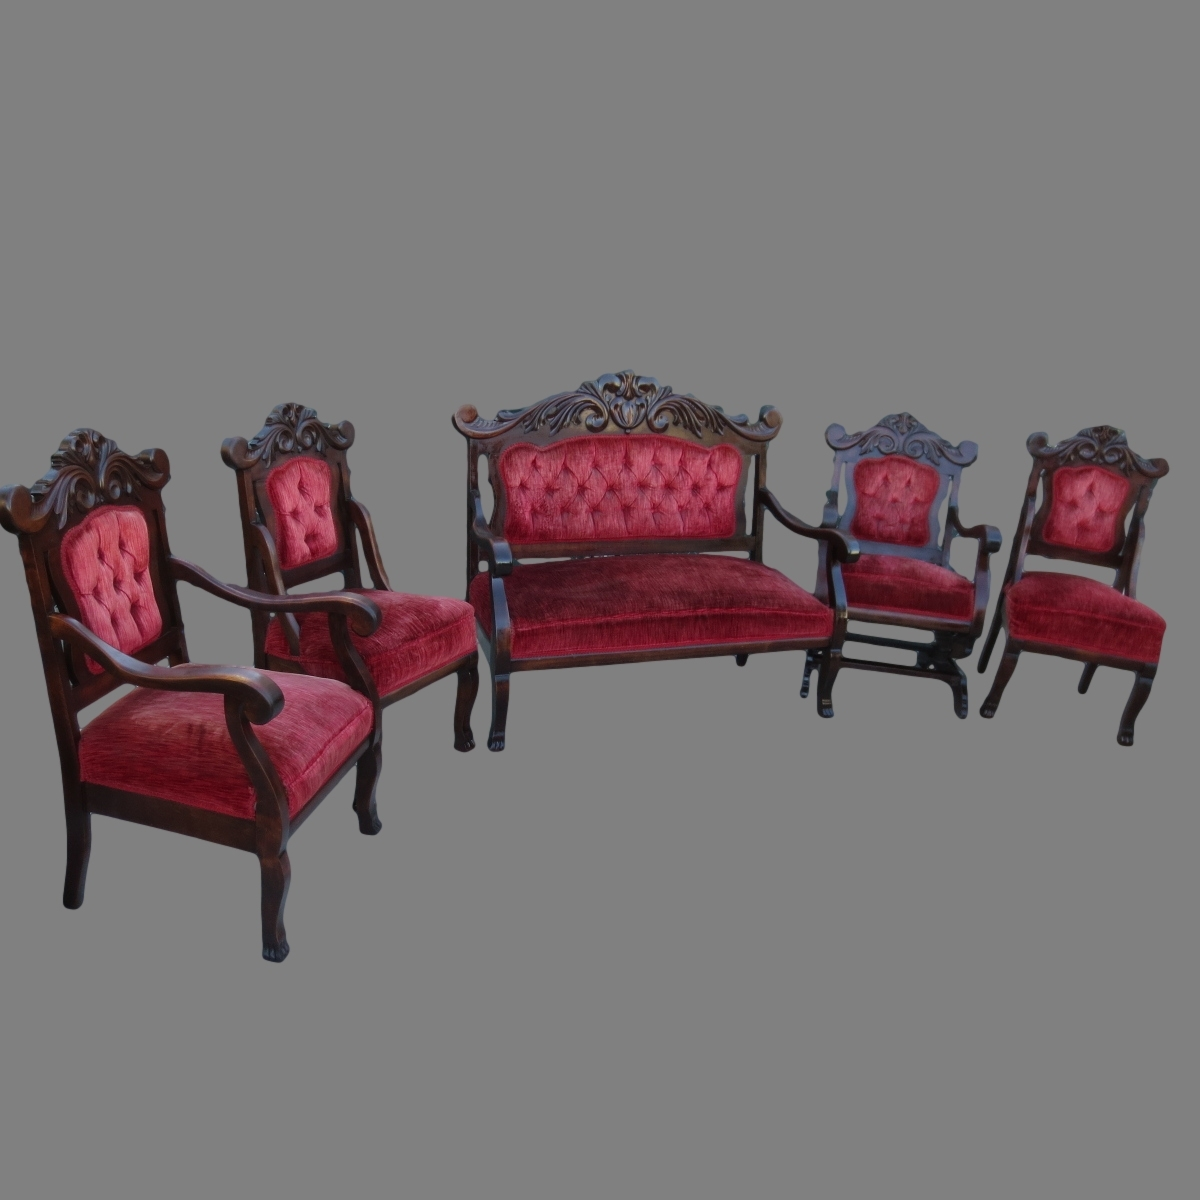 Antique Furniture Antique Sofas Antique Couches Antique Living With Regard To Antique Sofa Chairs (Image 5 of 15)